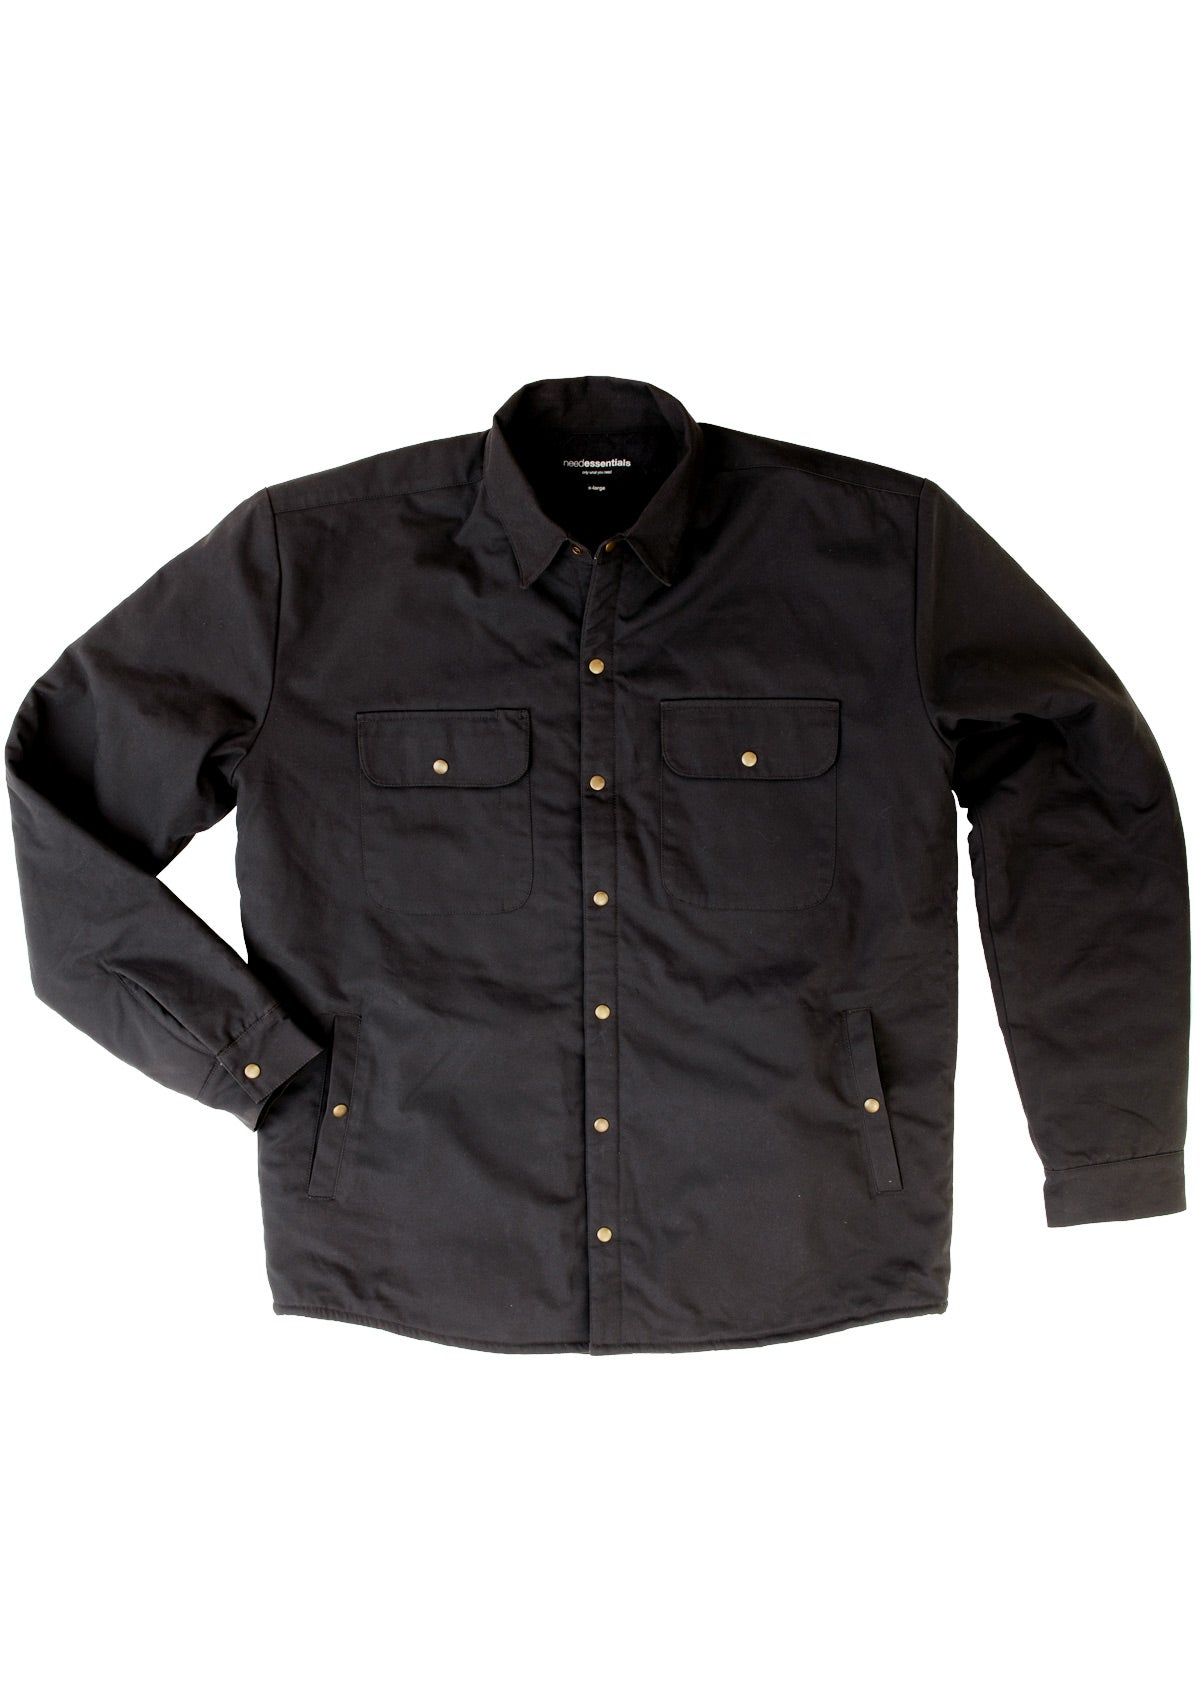 Organic Cotton / Wool Insulated Jacket - Twilight Black